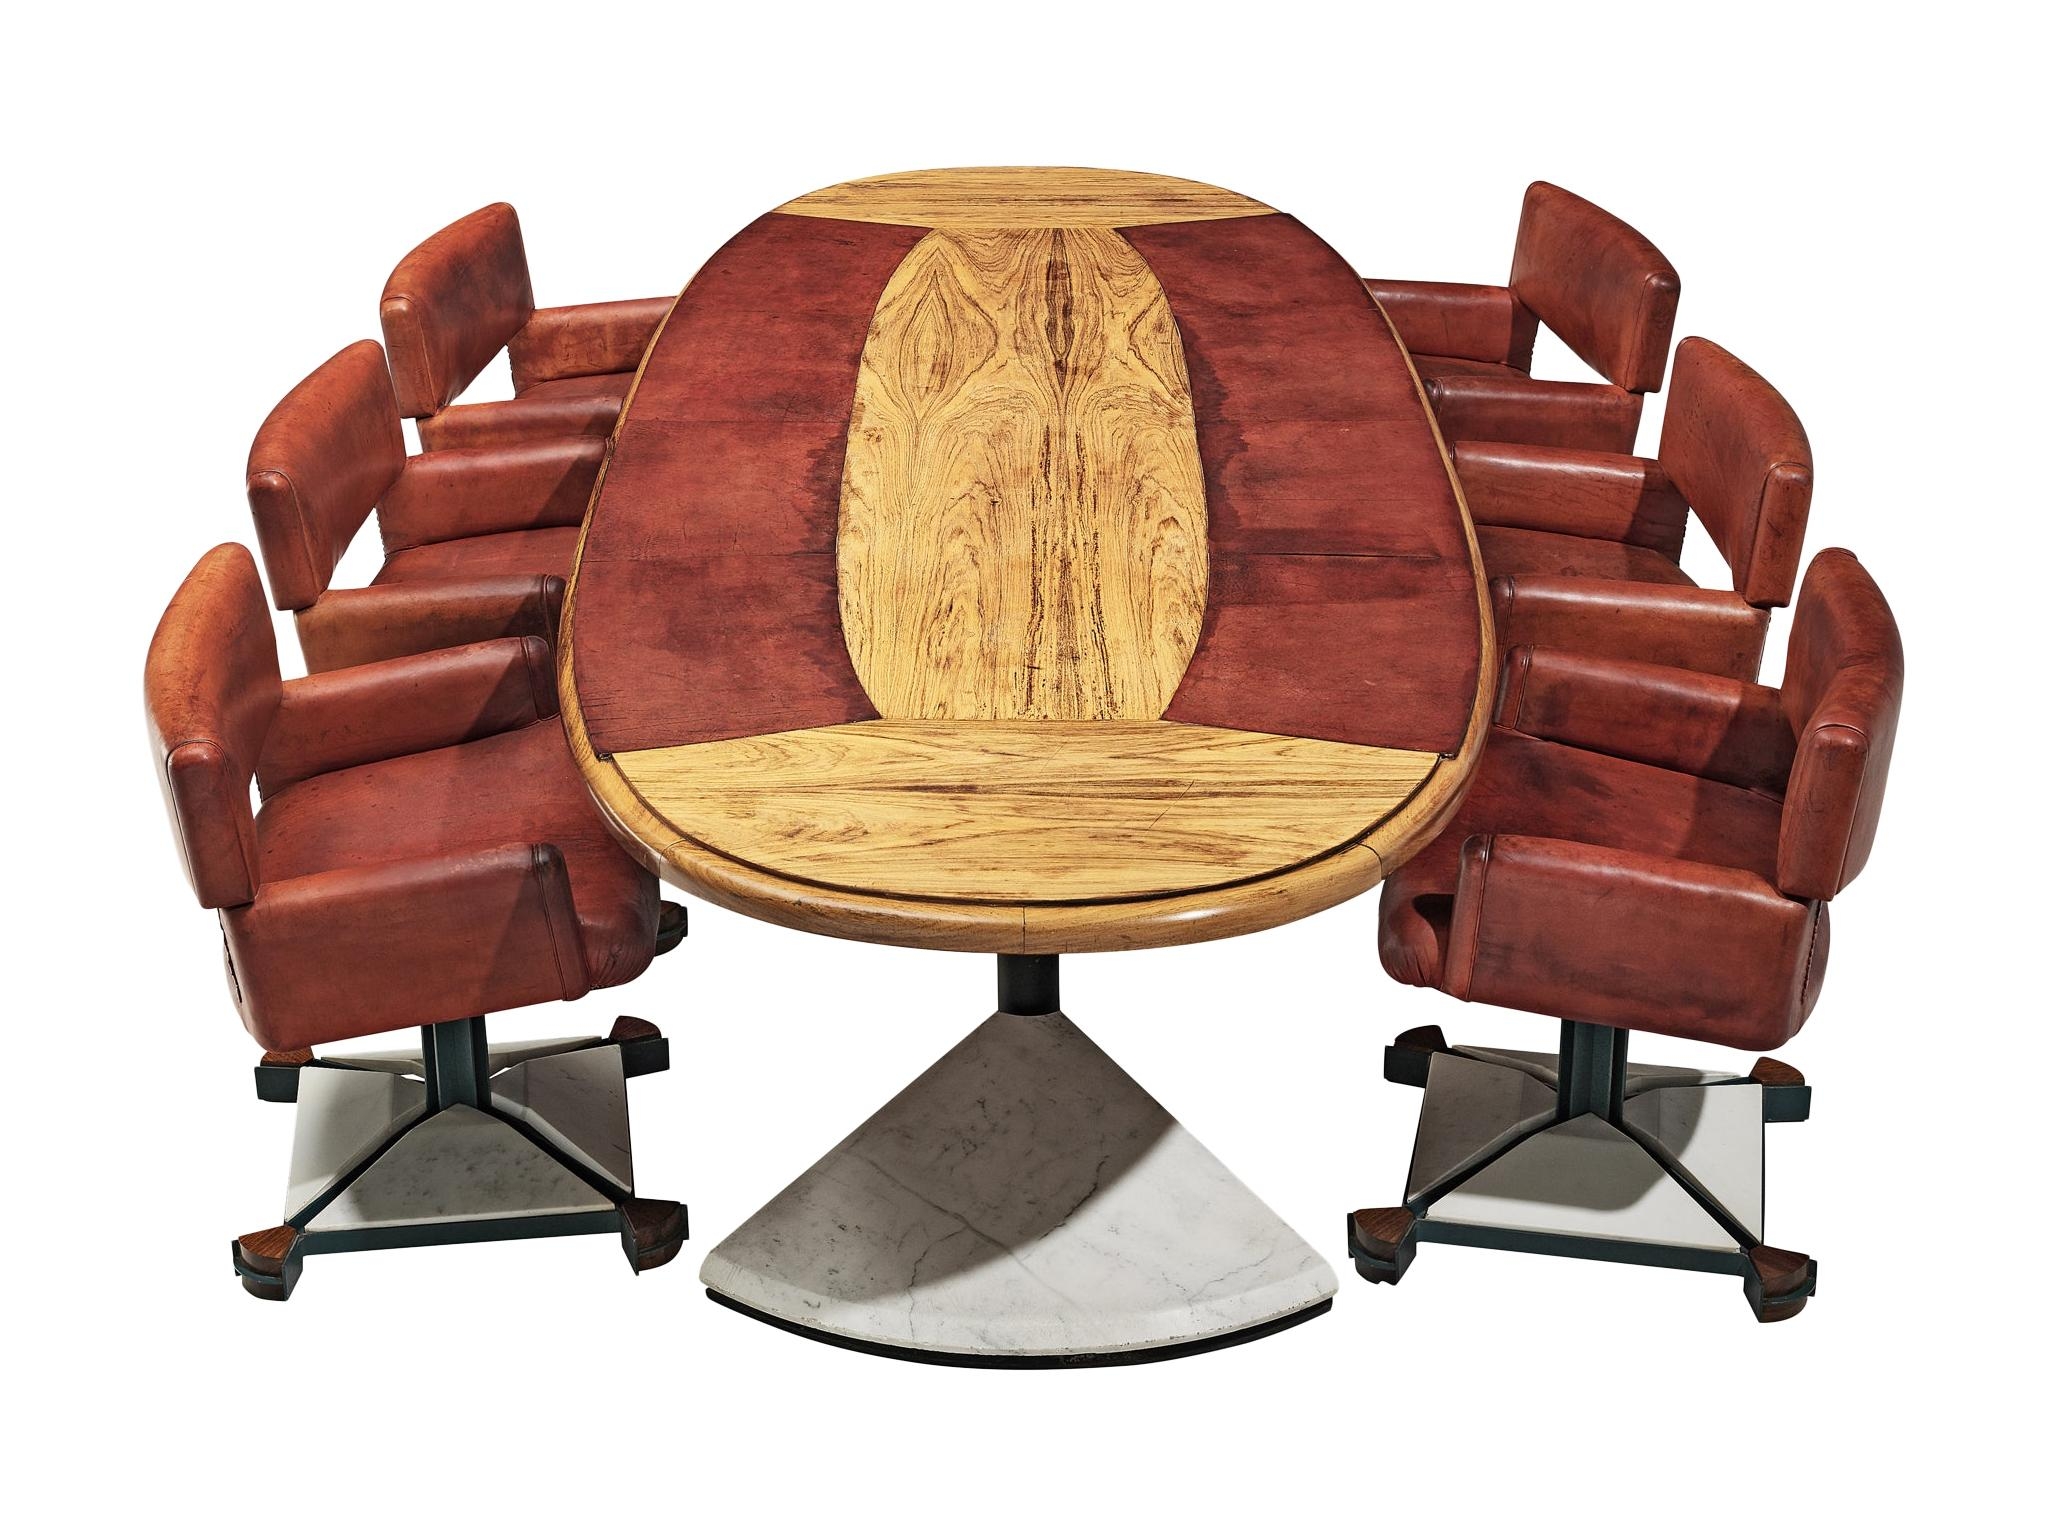 Set of Conference Table and Chairs in Walnut and Red Leather